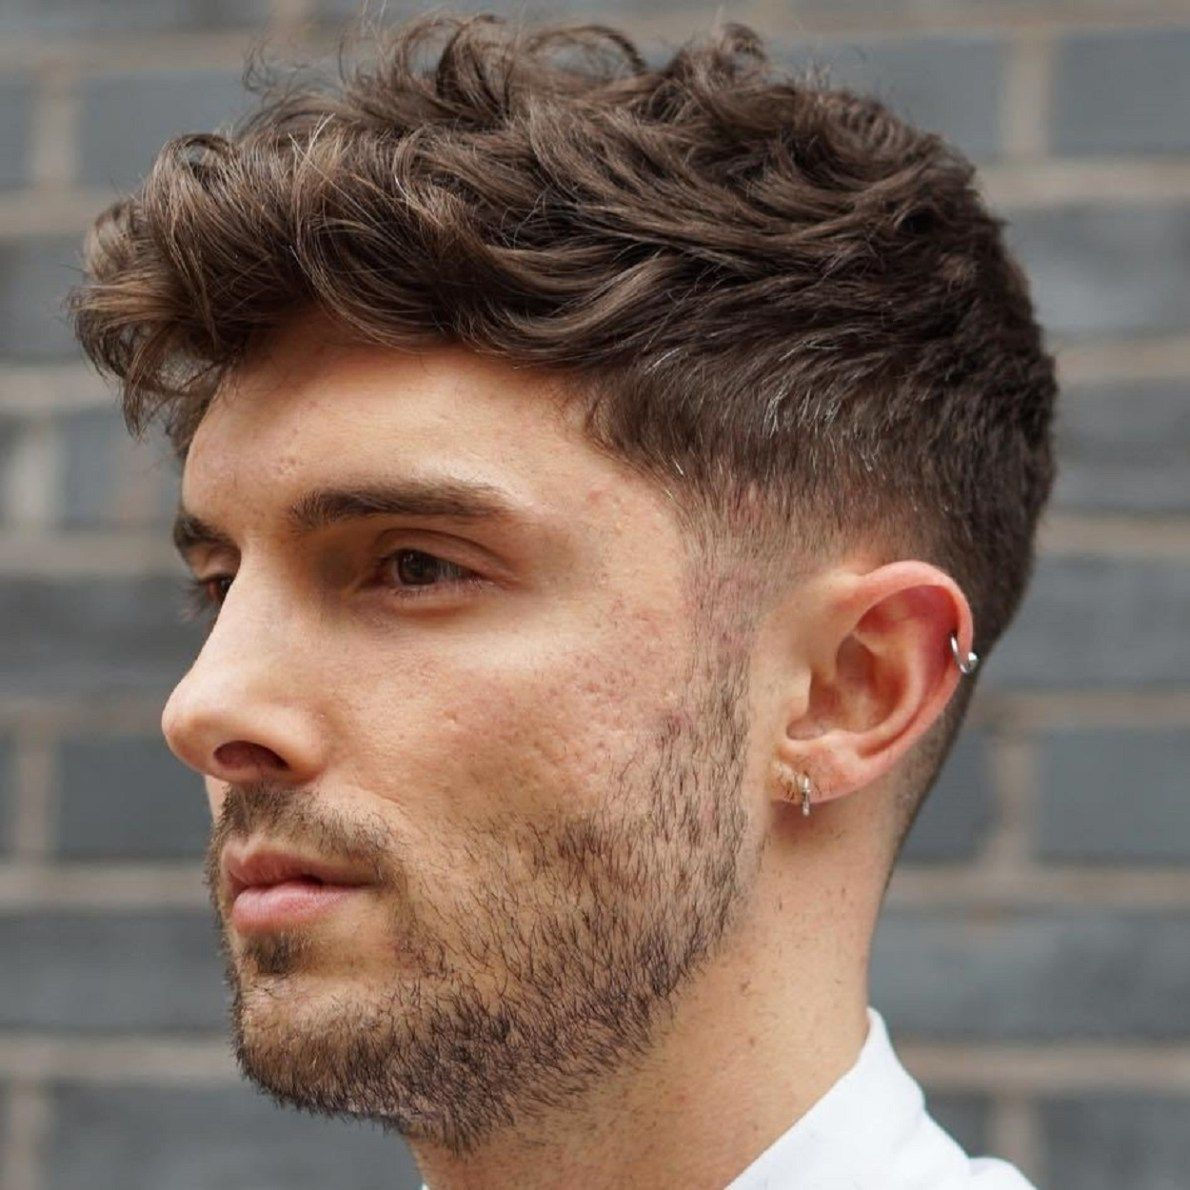 40 Statement Hairstyles For Men With Thick Hair In 2020 Mens Haircuts Short Wavy Hair Men Mens Hairstyles Short